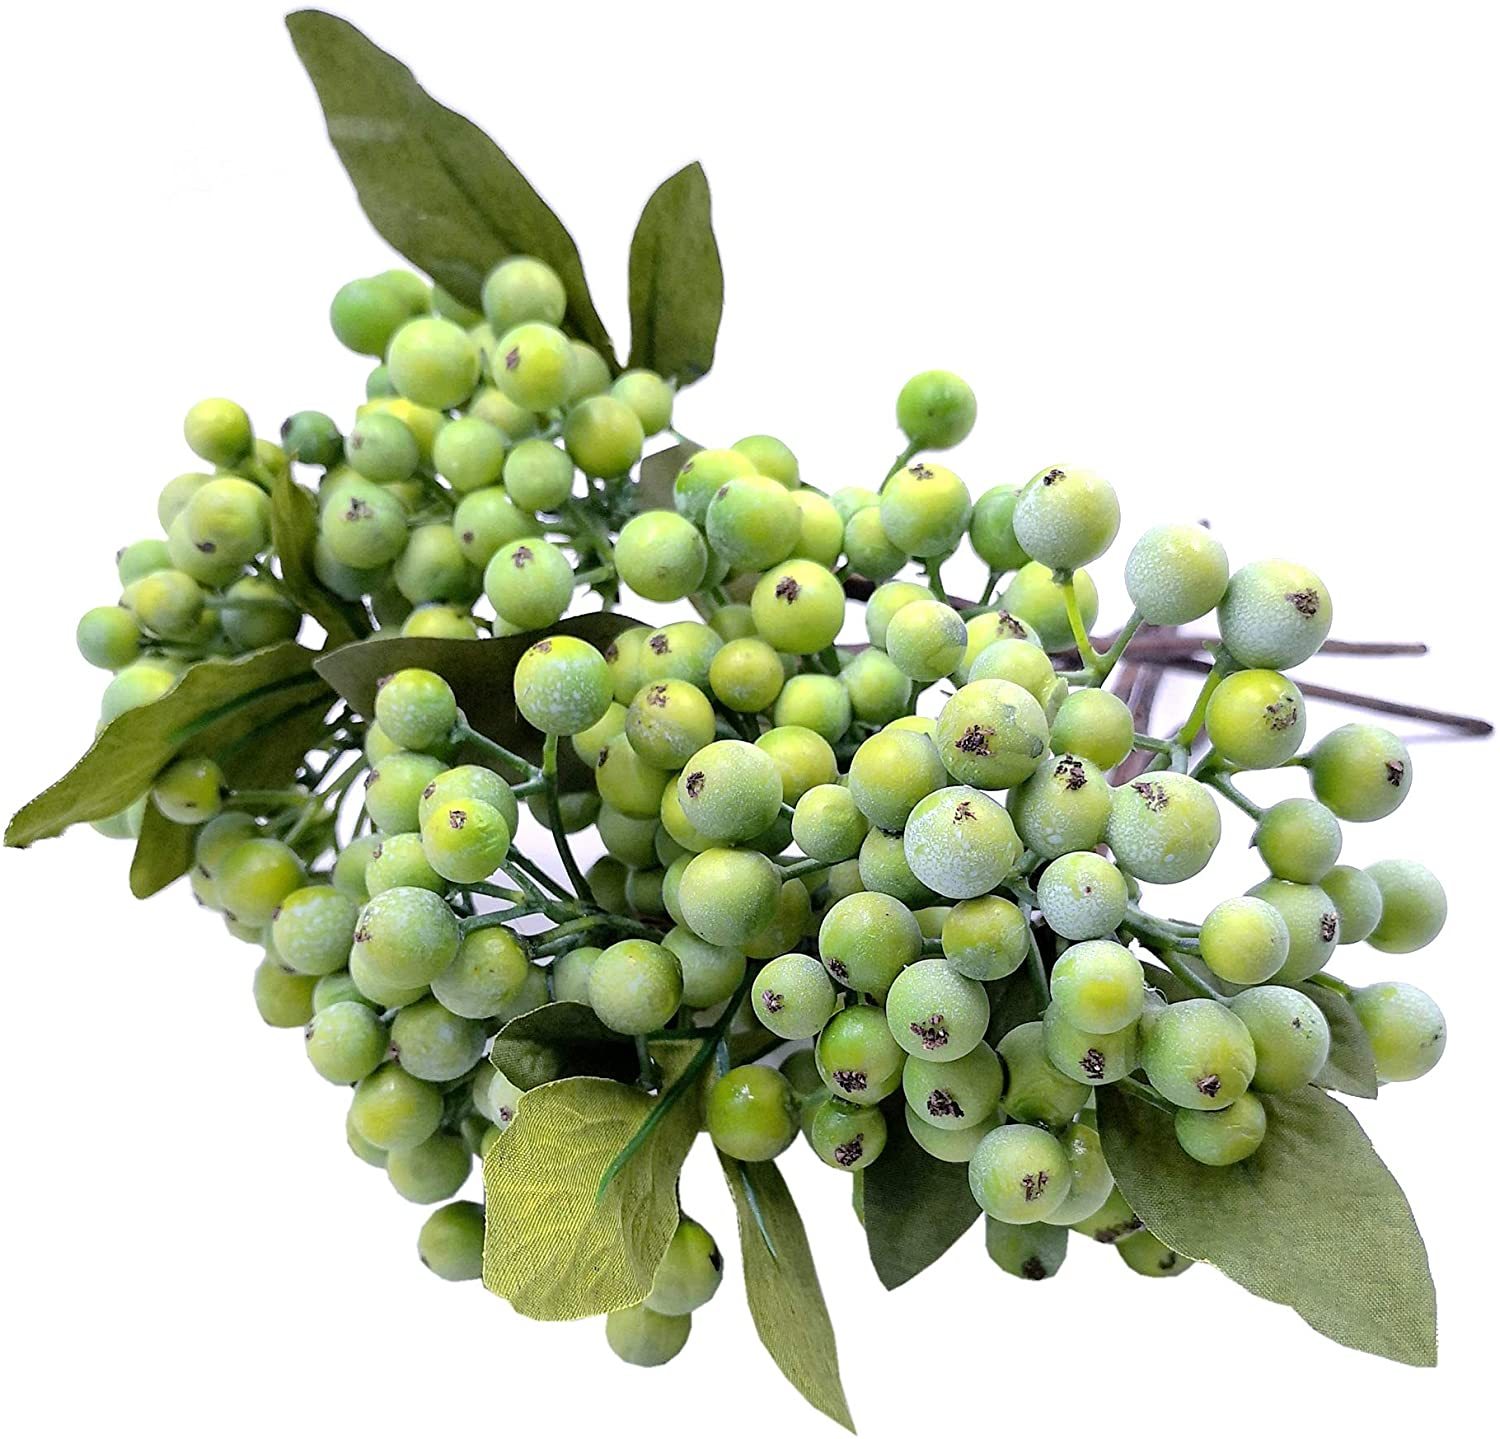 M2cbridge Pack of 6 Green Artificial Berry Stems Christmas Picks Wreath Ornament